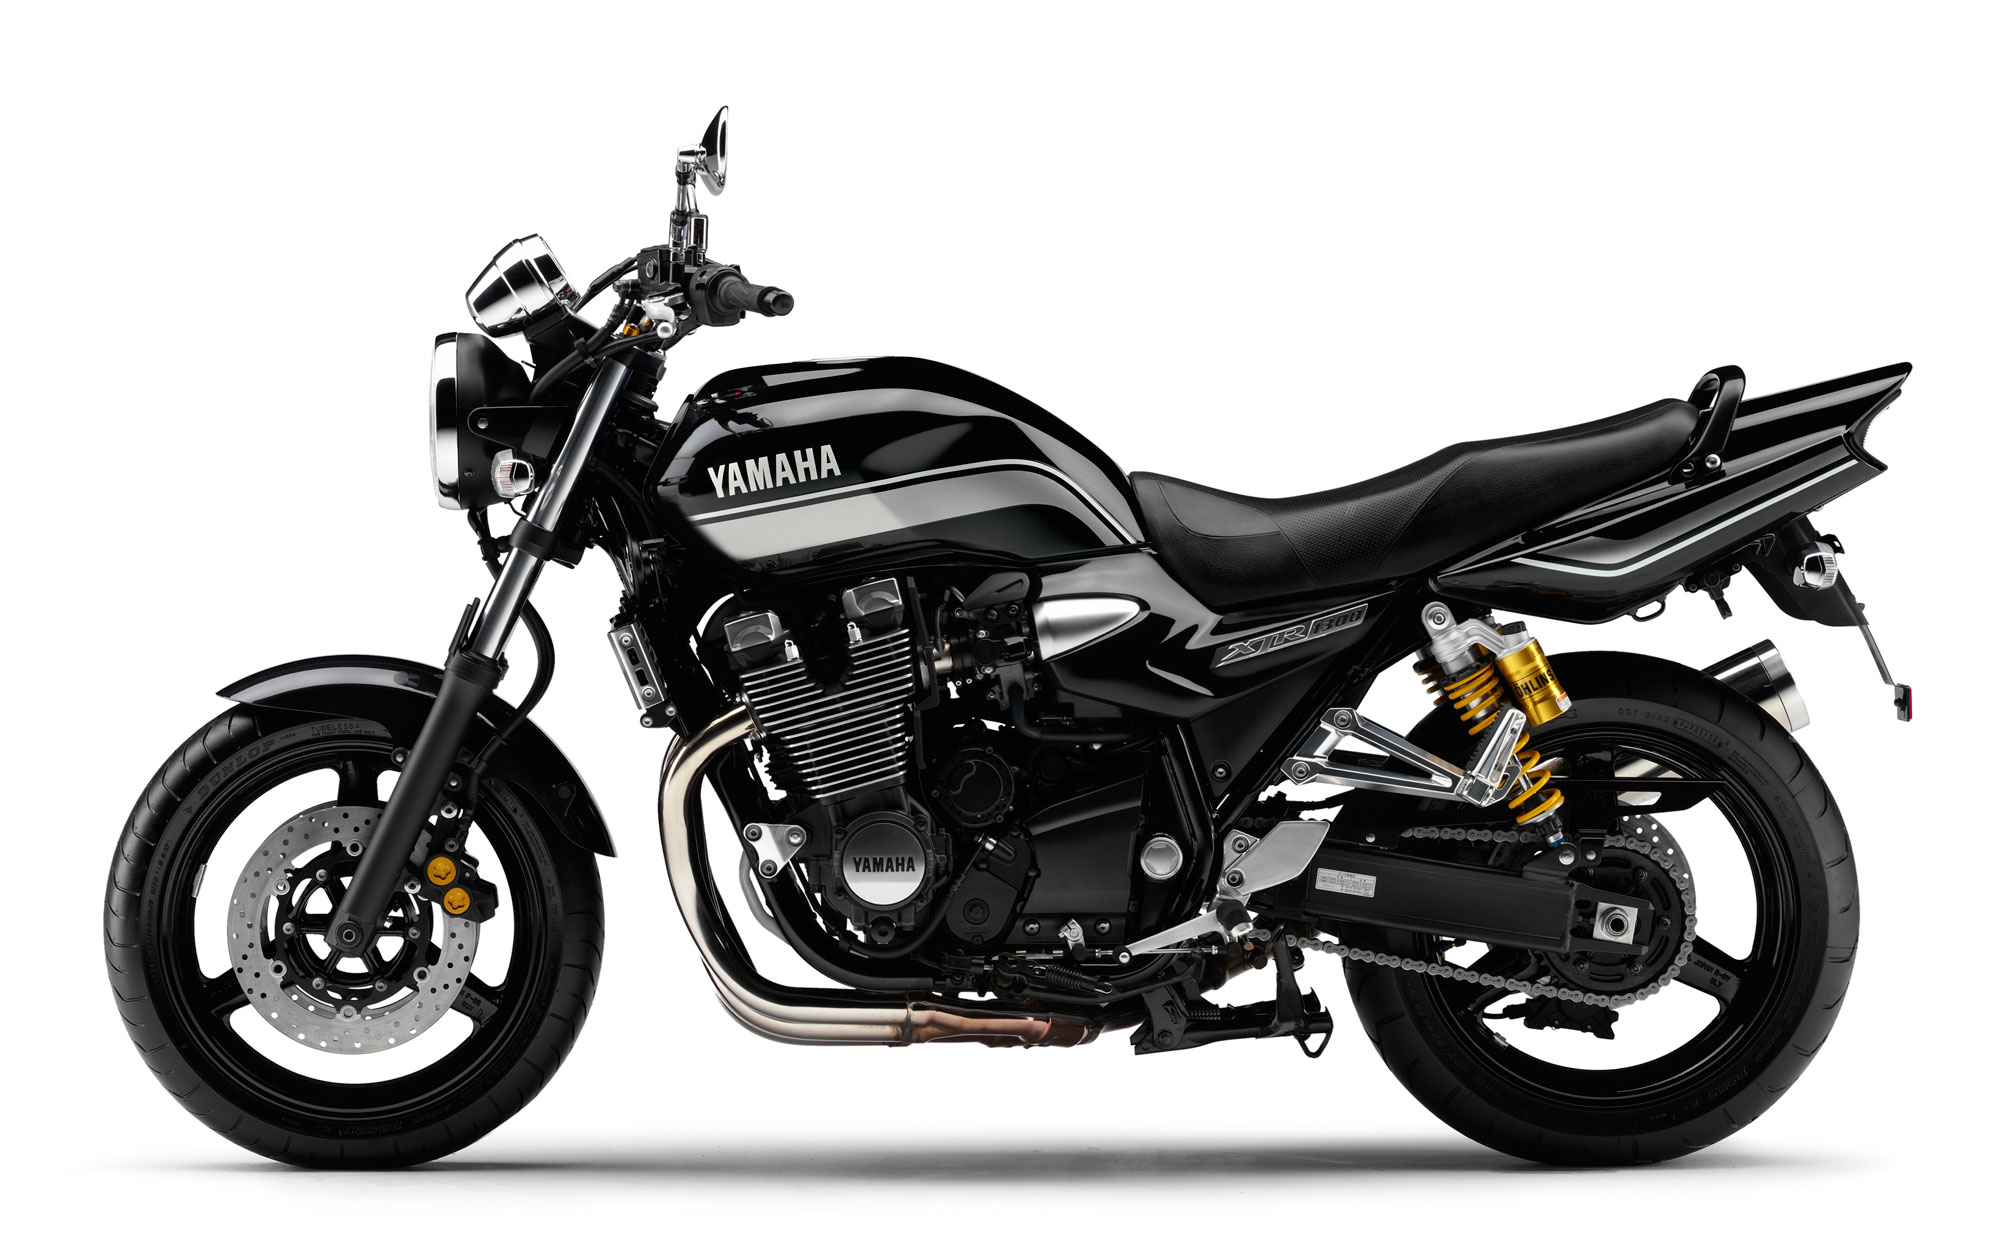 yamaha xjr1300 specs 2010 2011 autoevolution. Black Bedroom Furniture Sets. Home Design Ideas